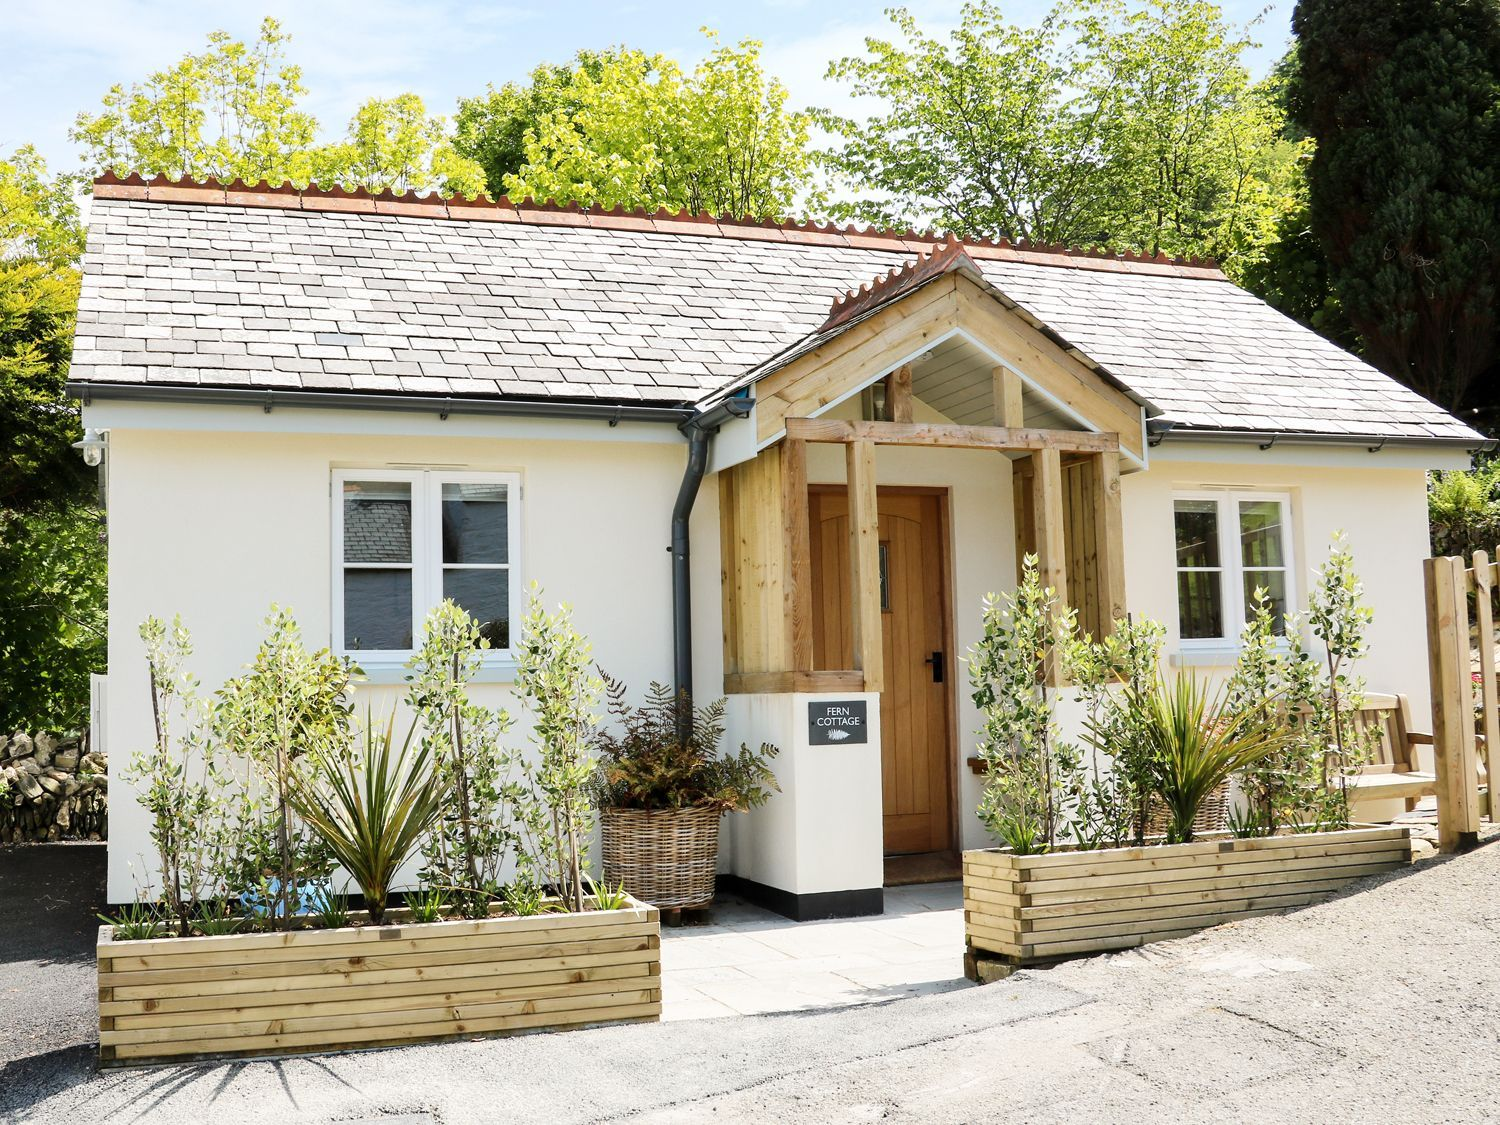 Superb A Detached Bungalow In Lynton North Devon That Can Sleep Home Interior And Landscaping Oversignezvosmurscom